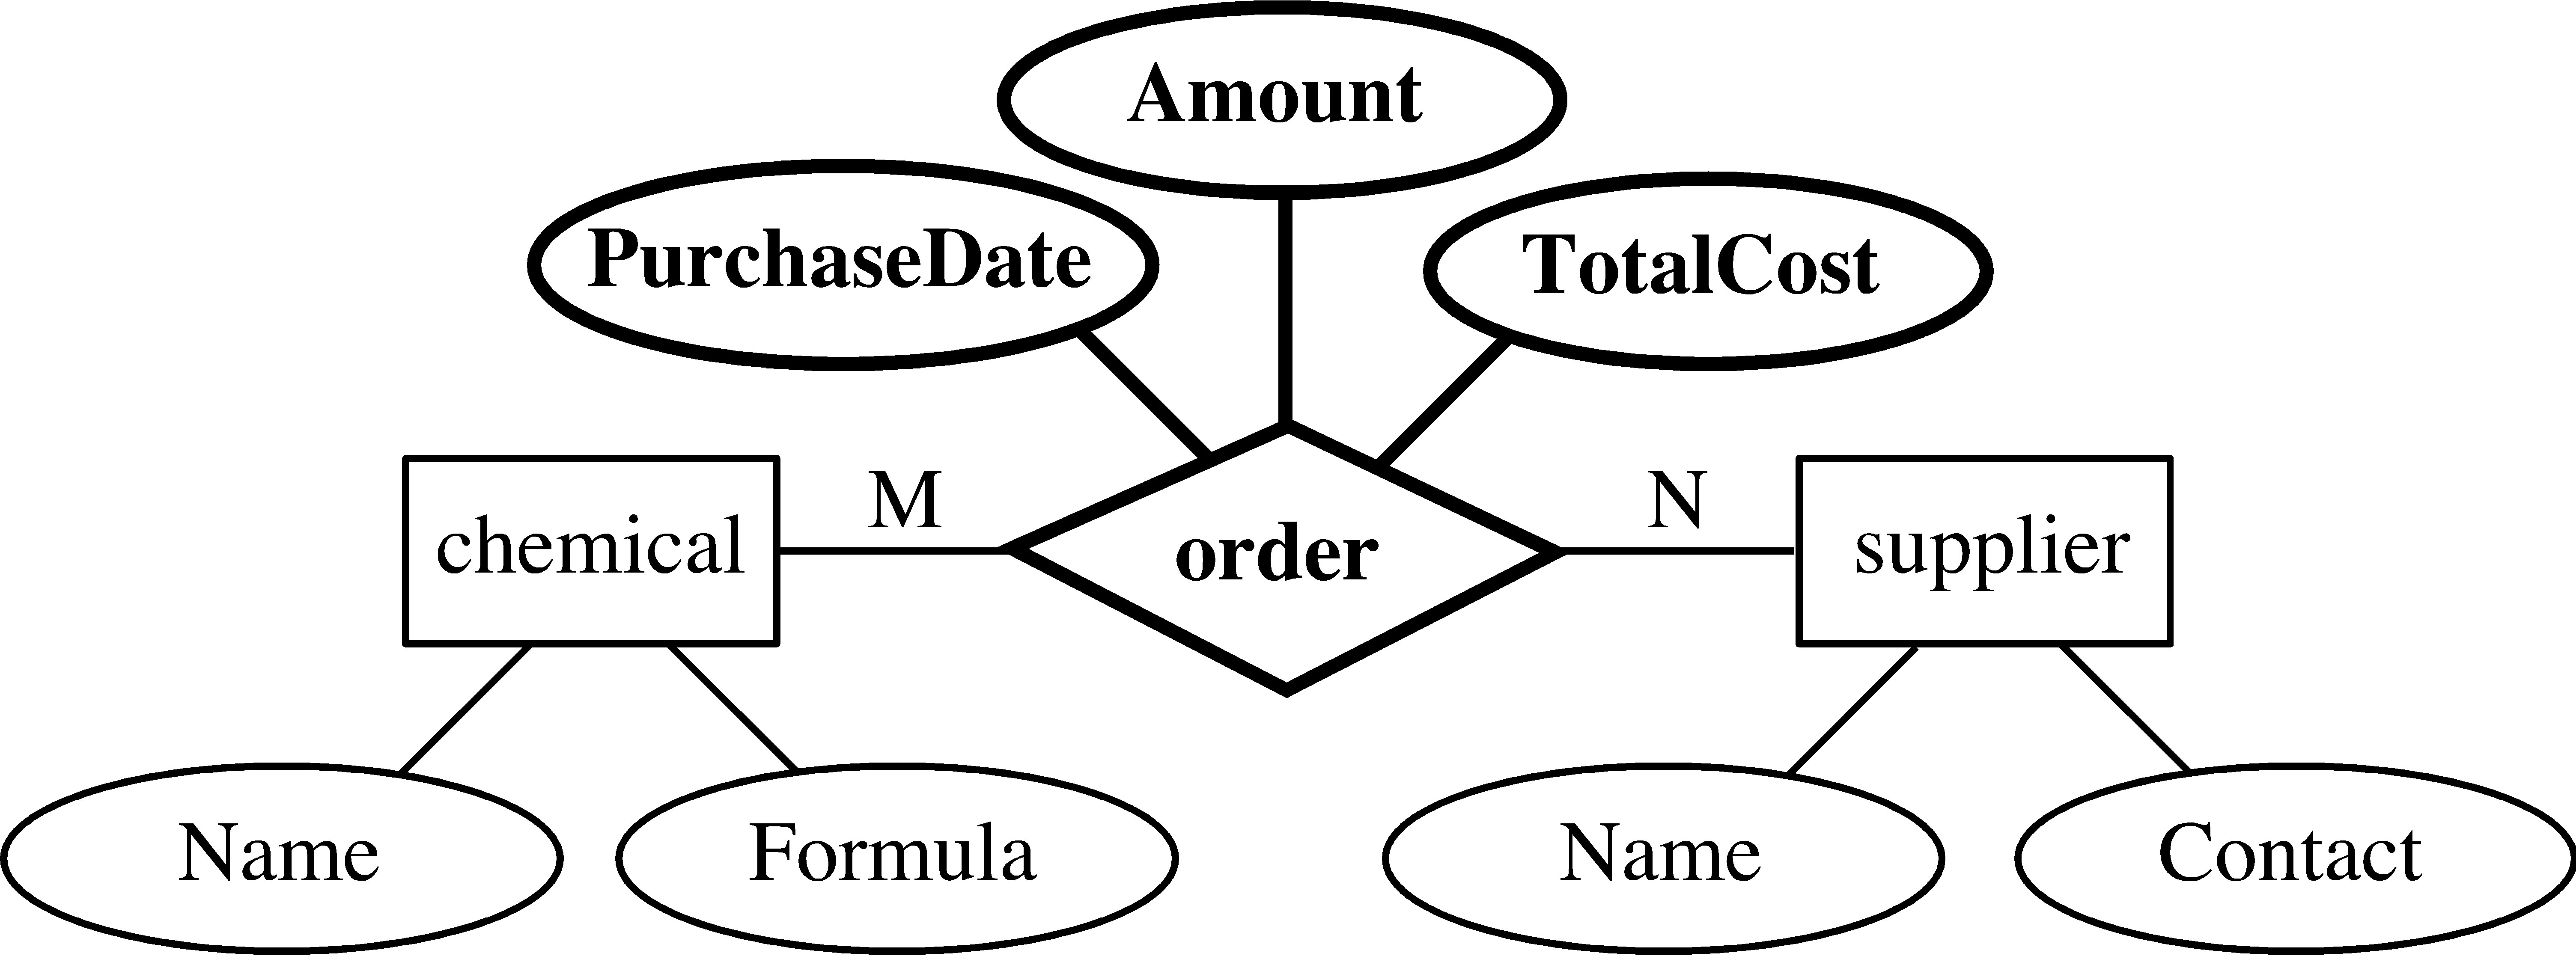 cost of carry relationship definition in dbms